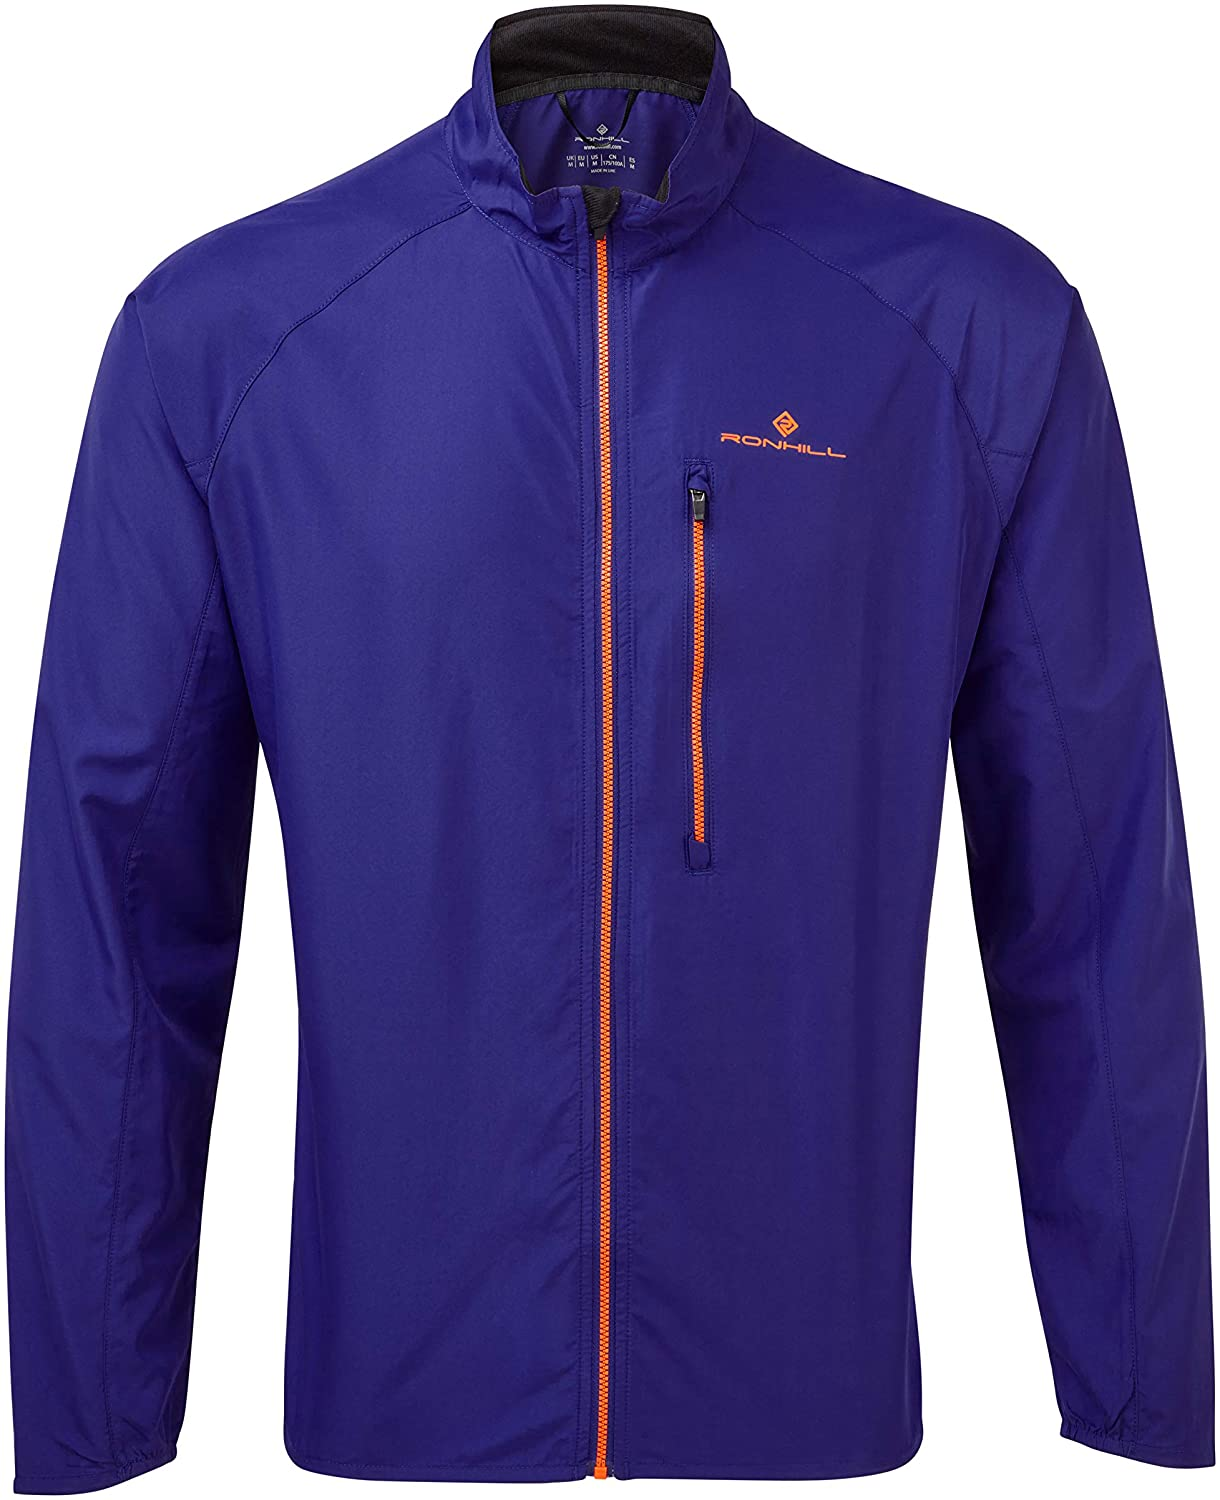 Ronhill mens Everyday Jacket